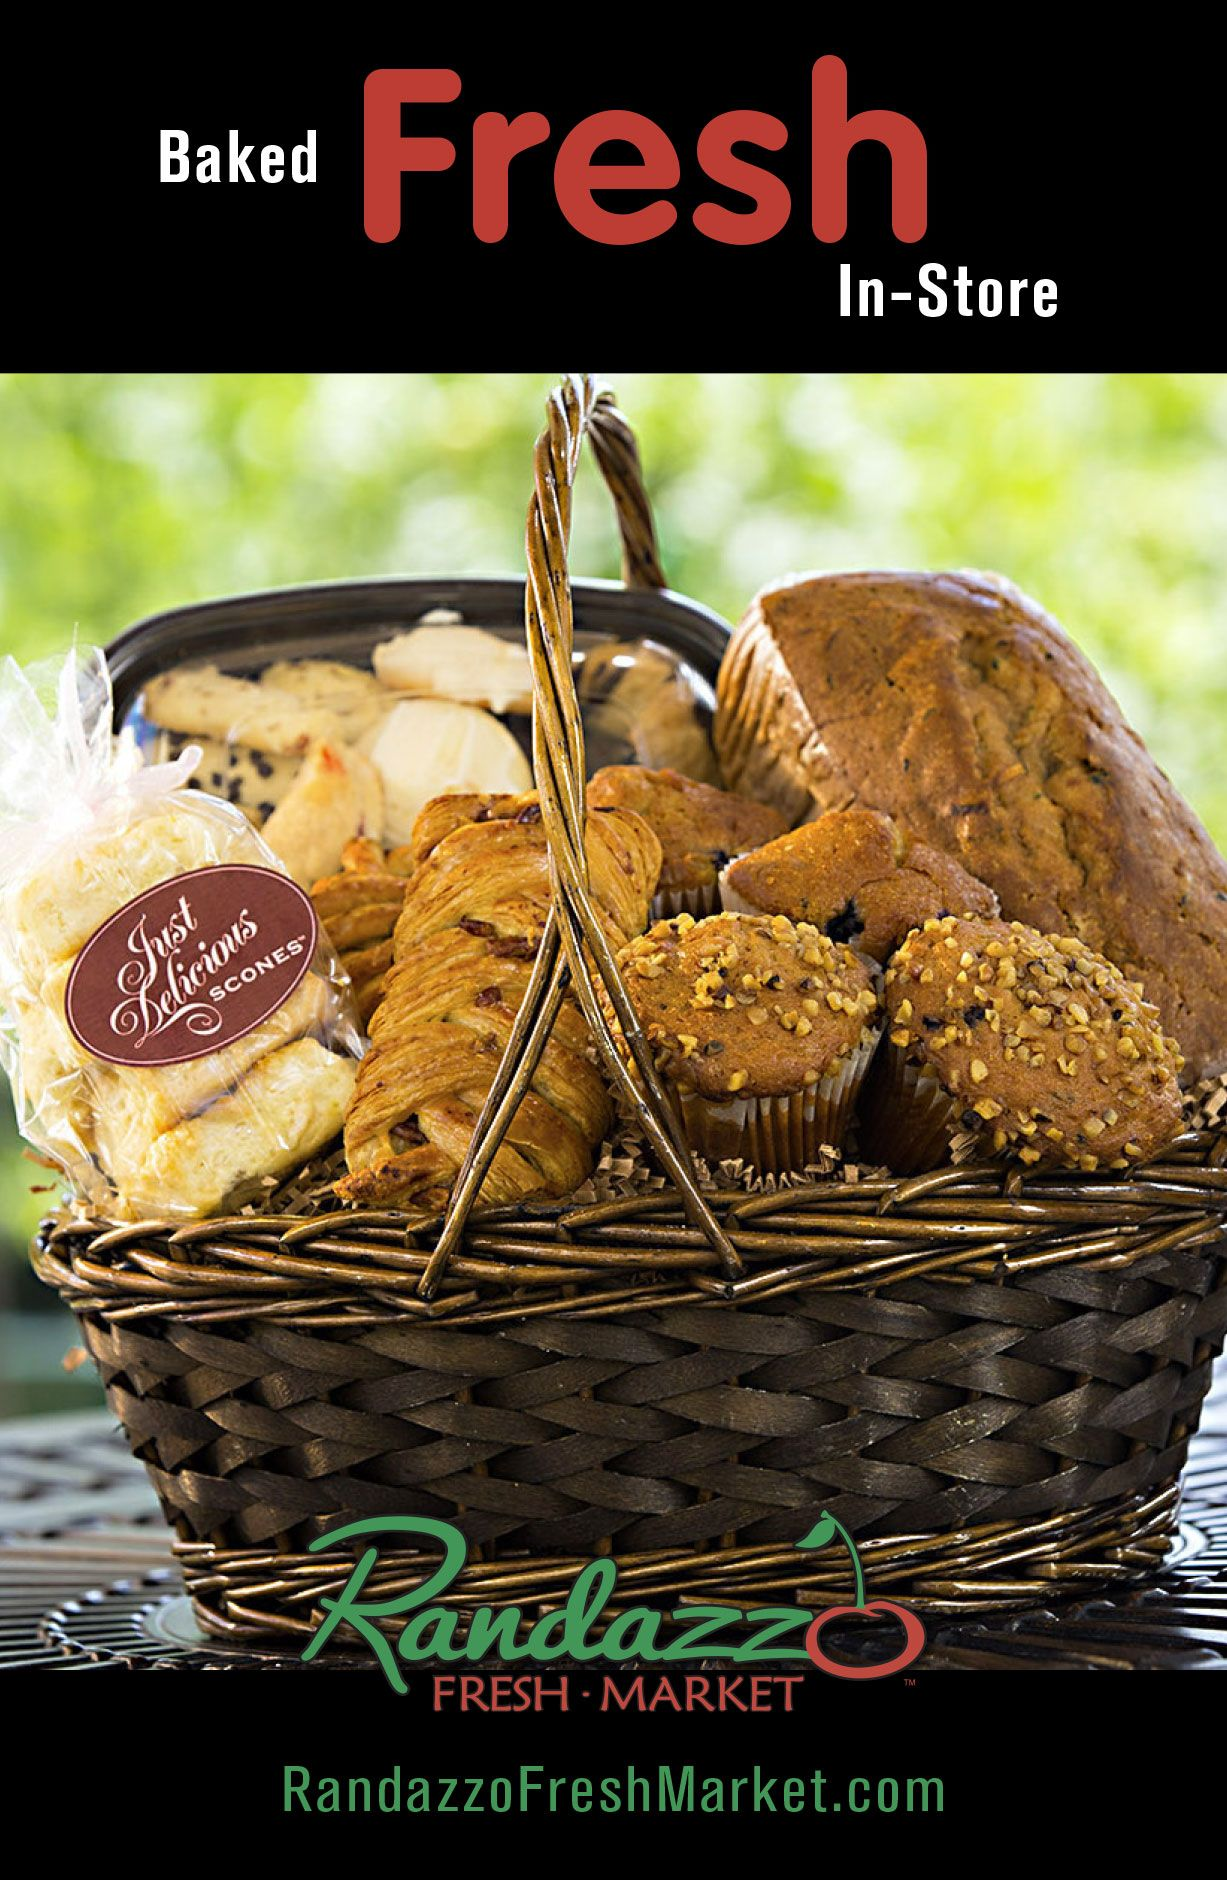 Our Bakery #GiftBaskets are made #fresh in-store everyday and handpicked to make the #perfect #gift!